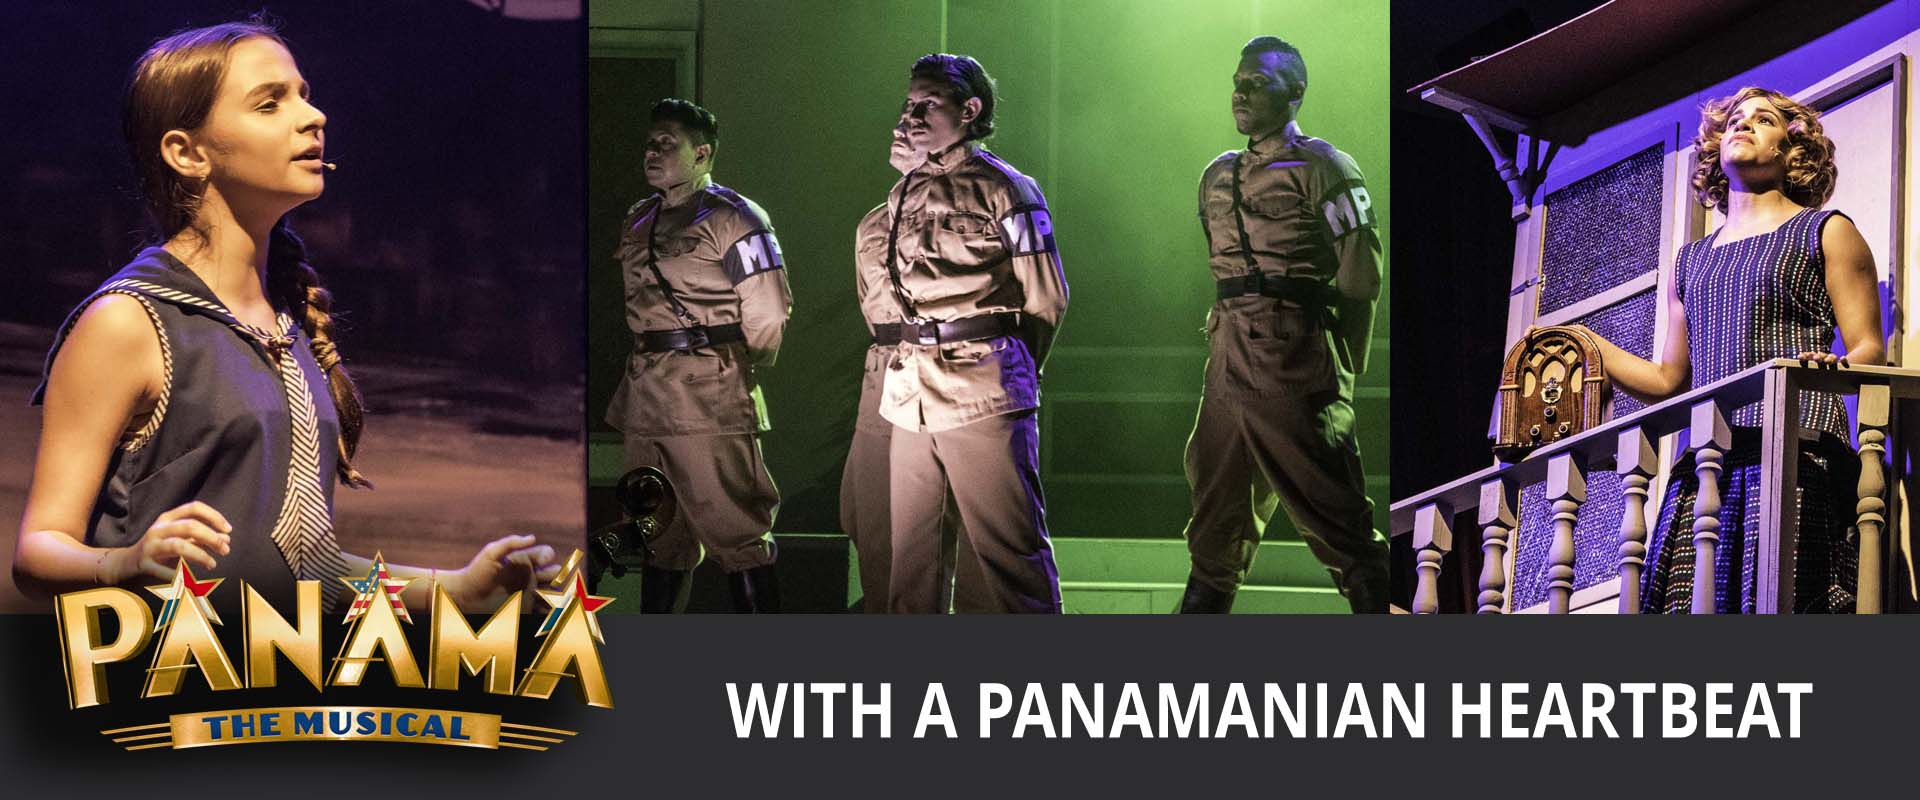 Panamá: The Musical - Musical Theatre in Panama City, Panama